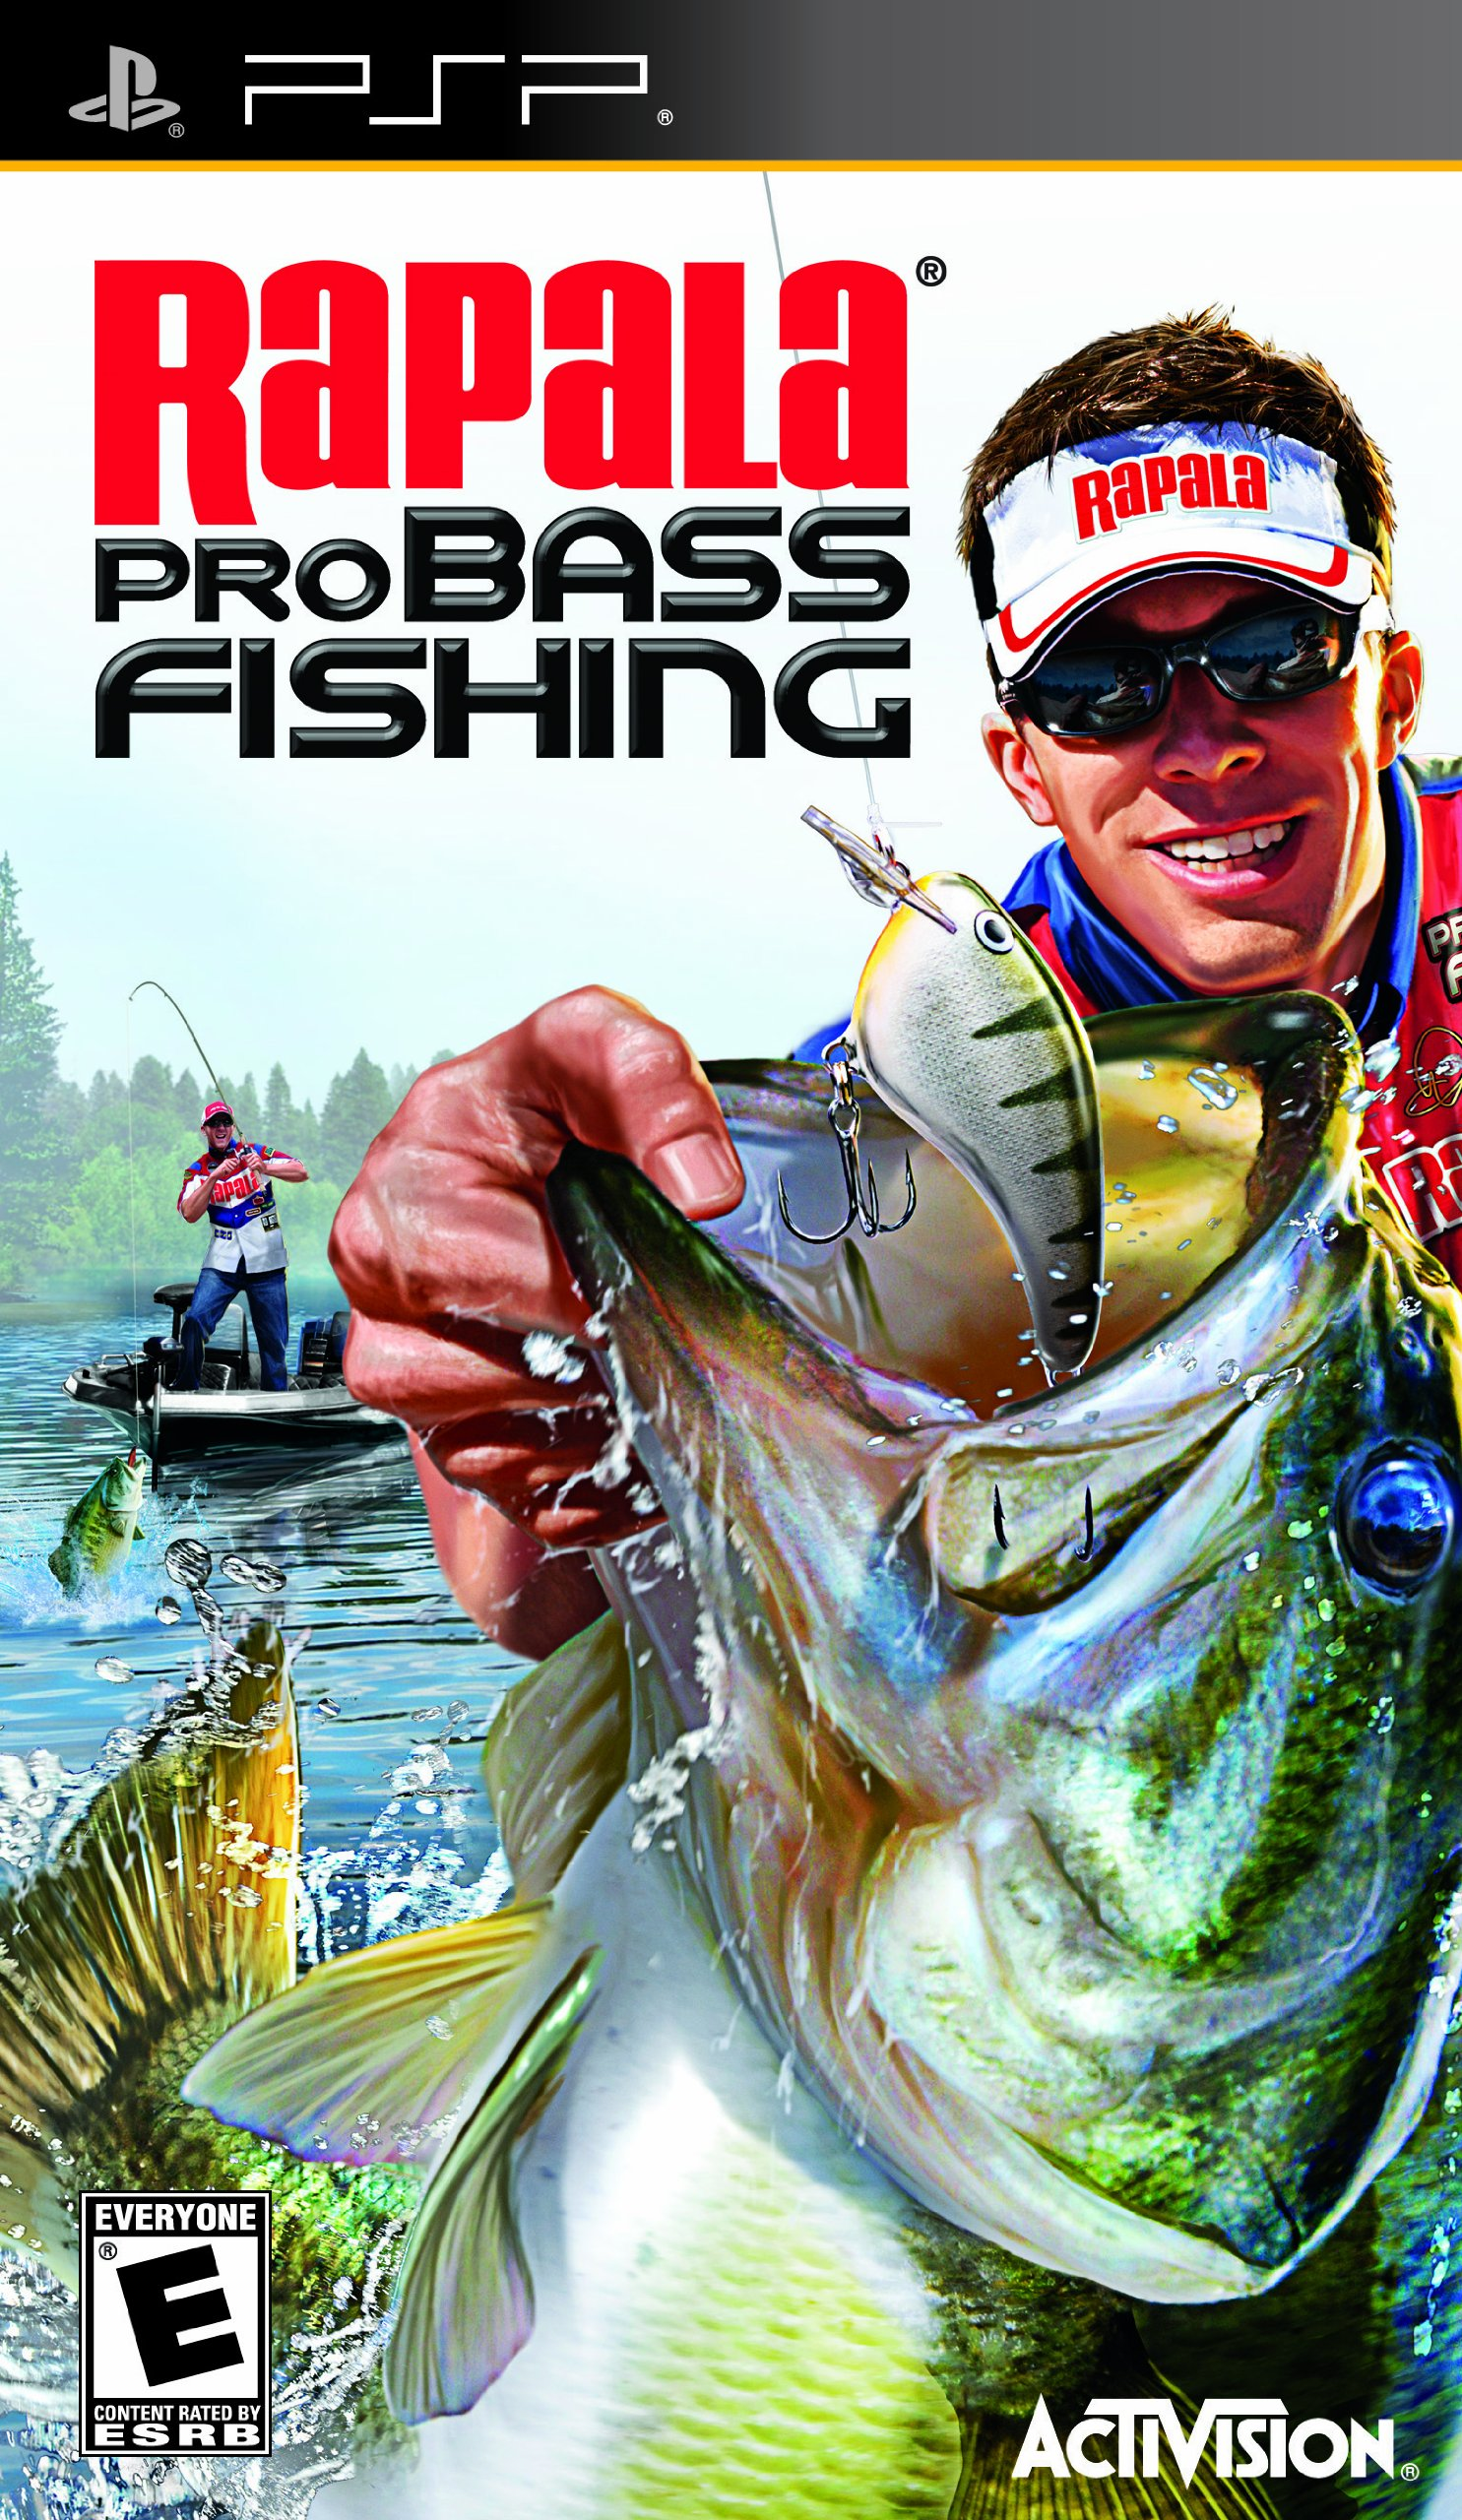 Rapala pro bass fishing 2010 release date xbox 360 ps3 psp for Ps3 fishing games